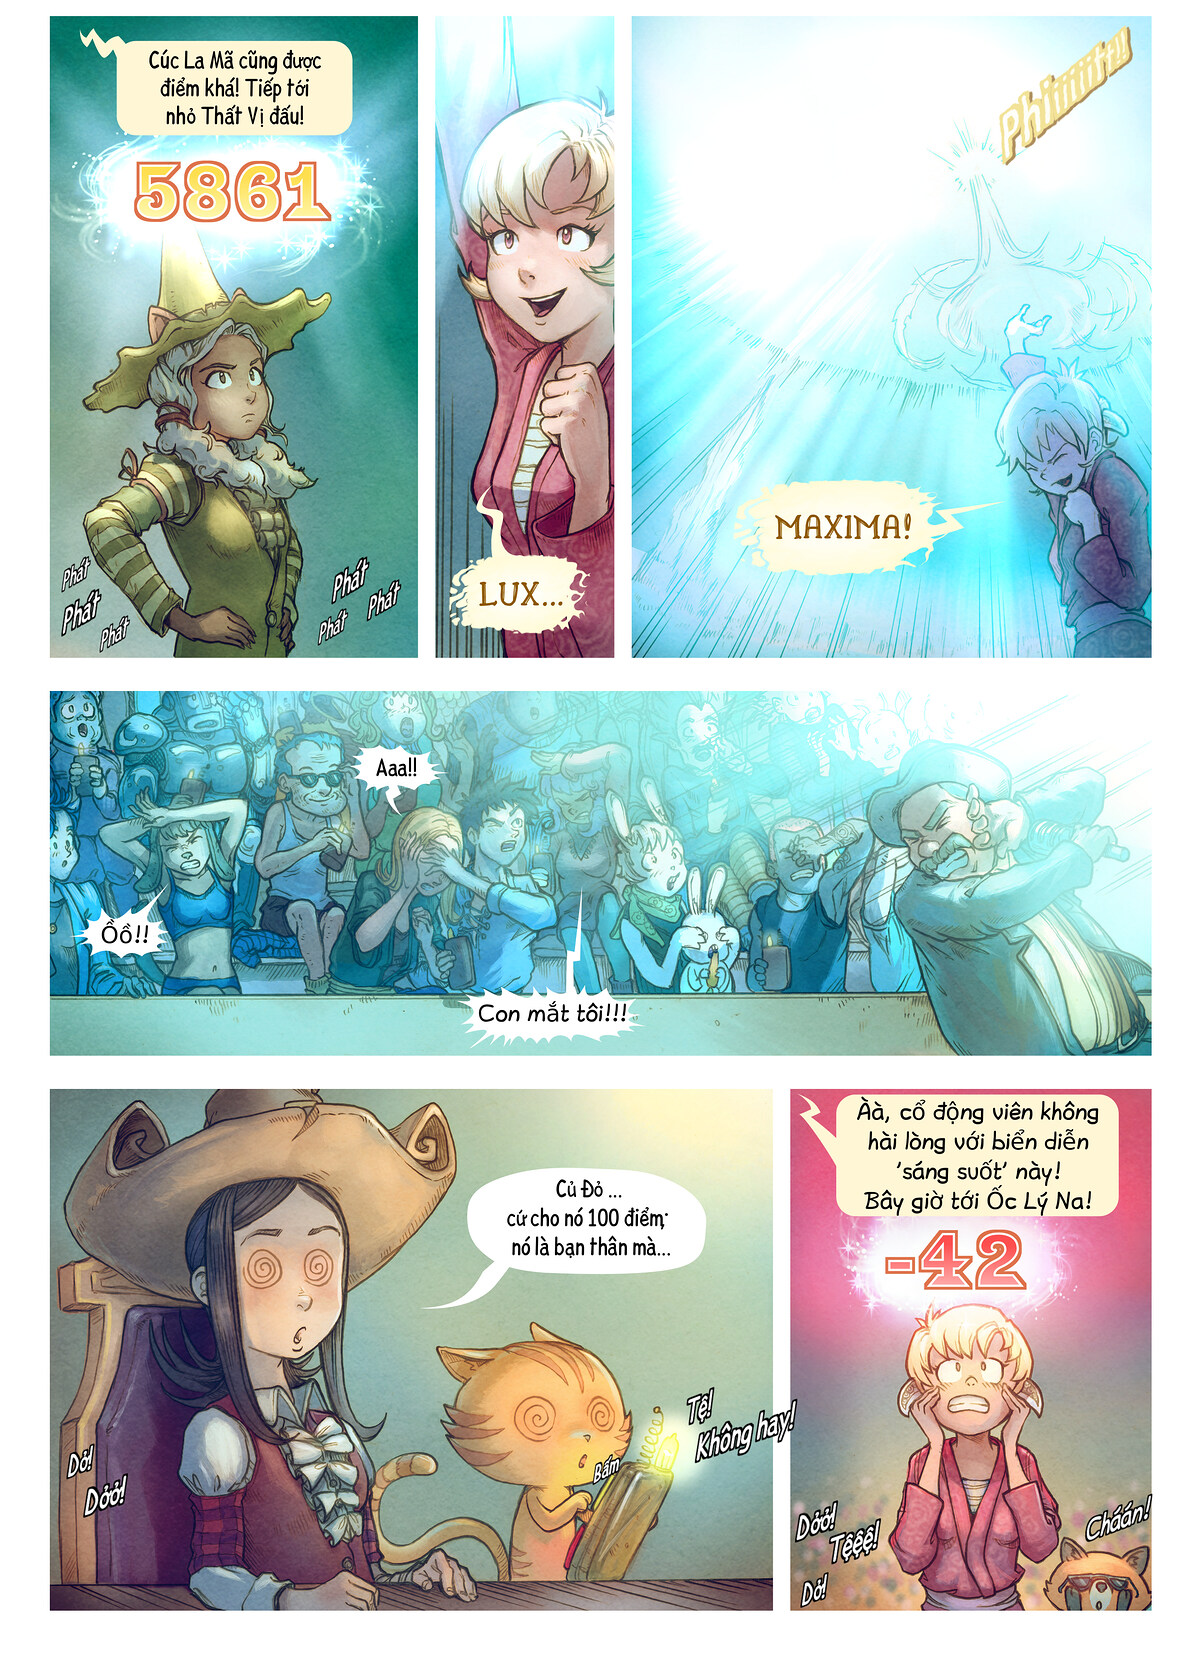 A webcomic page of Pepper&Carrot, Tập 22 [vi], trang 6